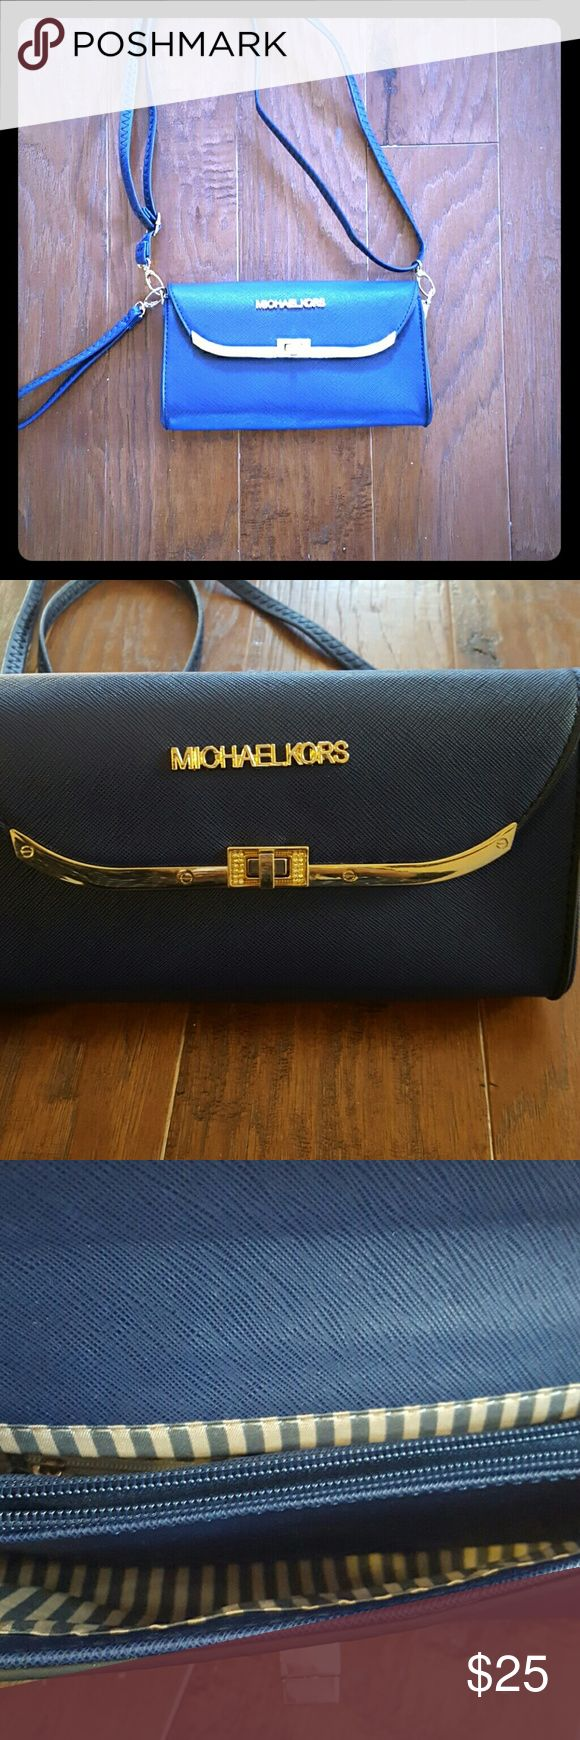 Designer Fashion Handbag on Navy Bag reads Michael Kors.  I can not guarantee the aunthenticity of the name brand, which proce reflects.  It's super cute though and in brand new condition. Bags Shoulder Bags